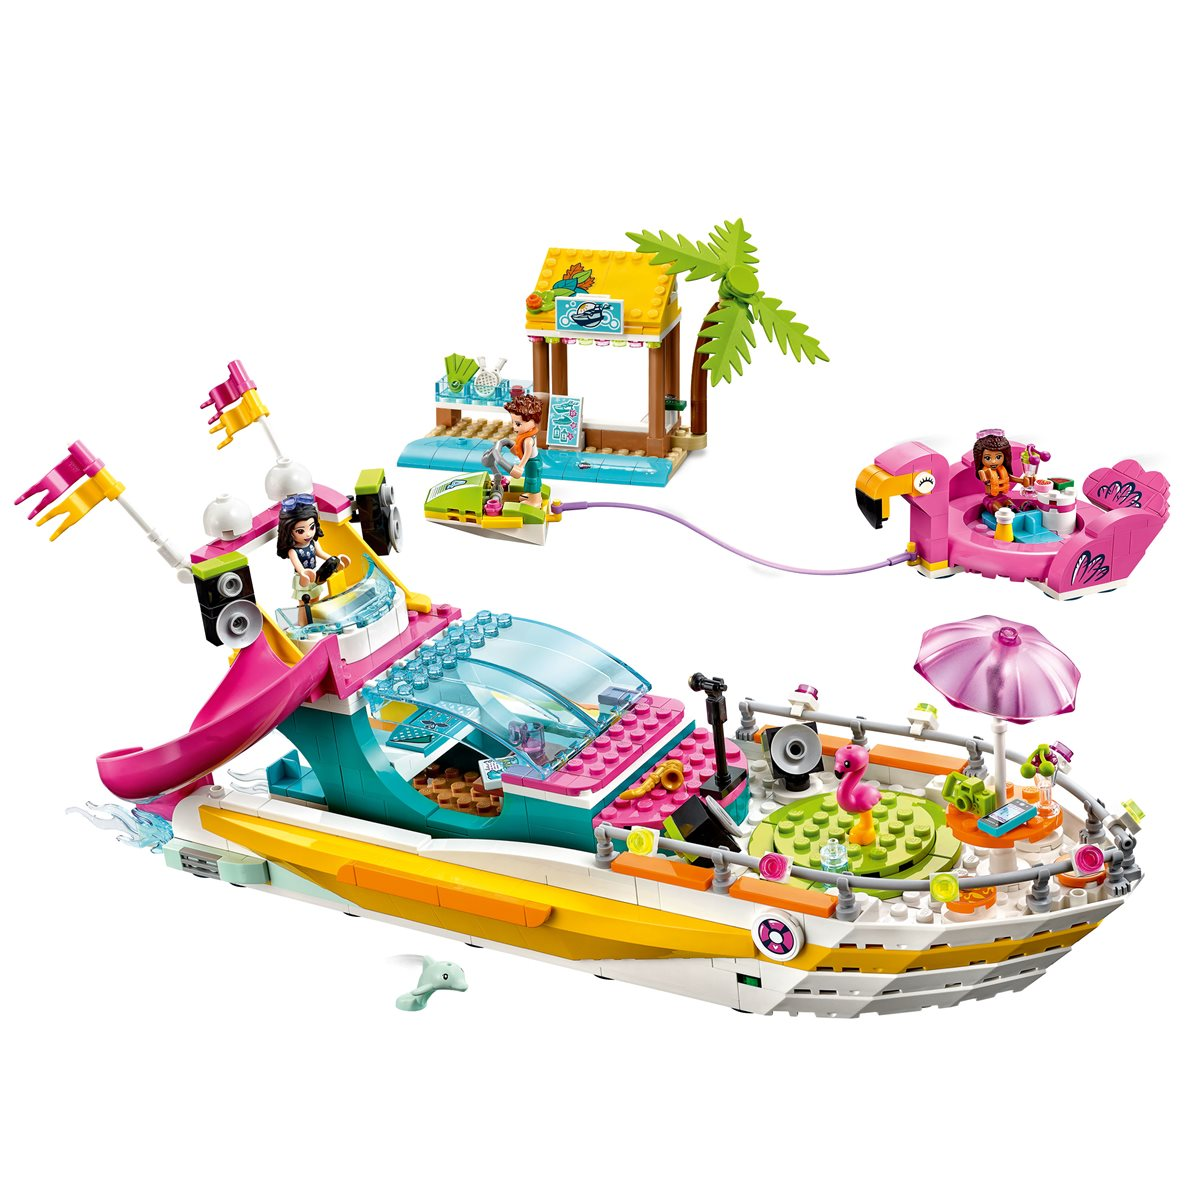 LEGO 41433 Friends Party Boat - Entertainment Earth